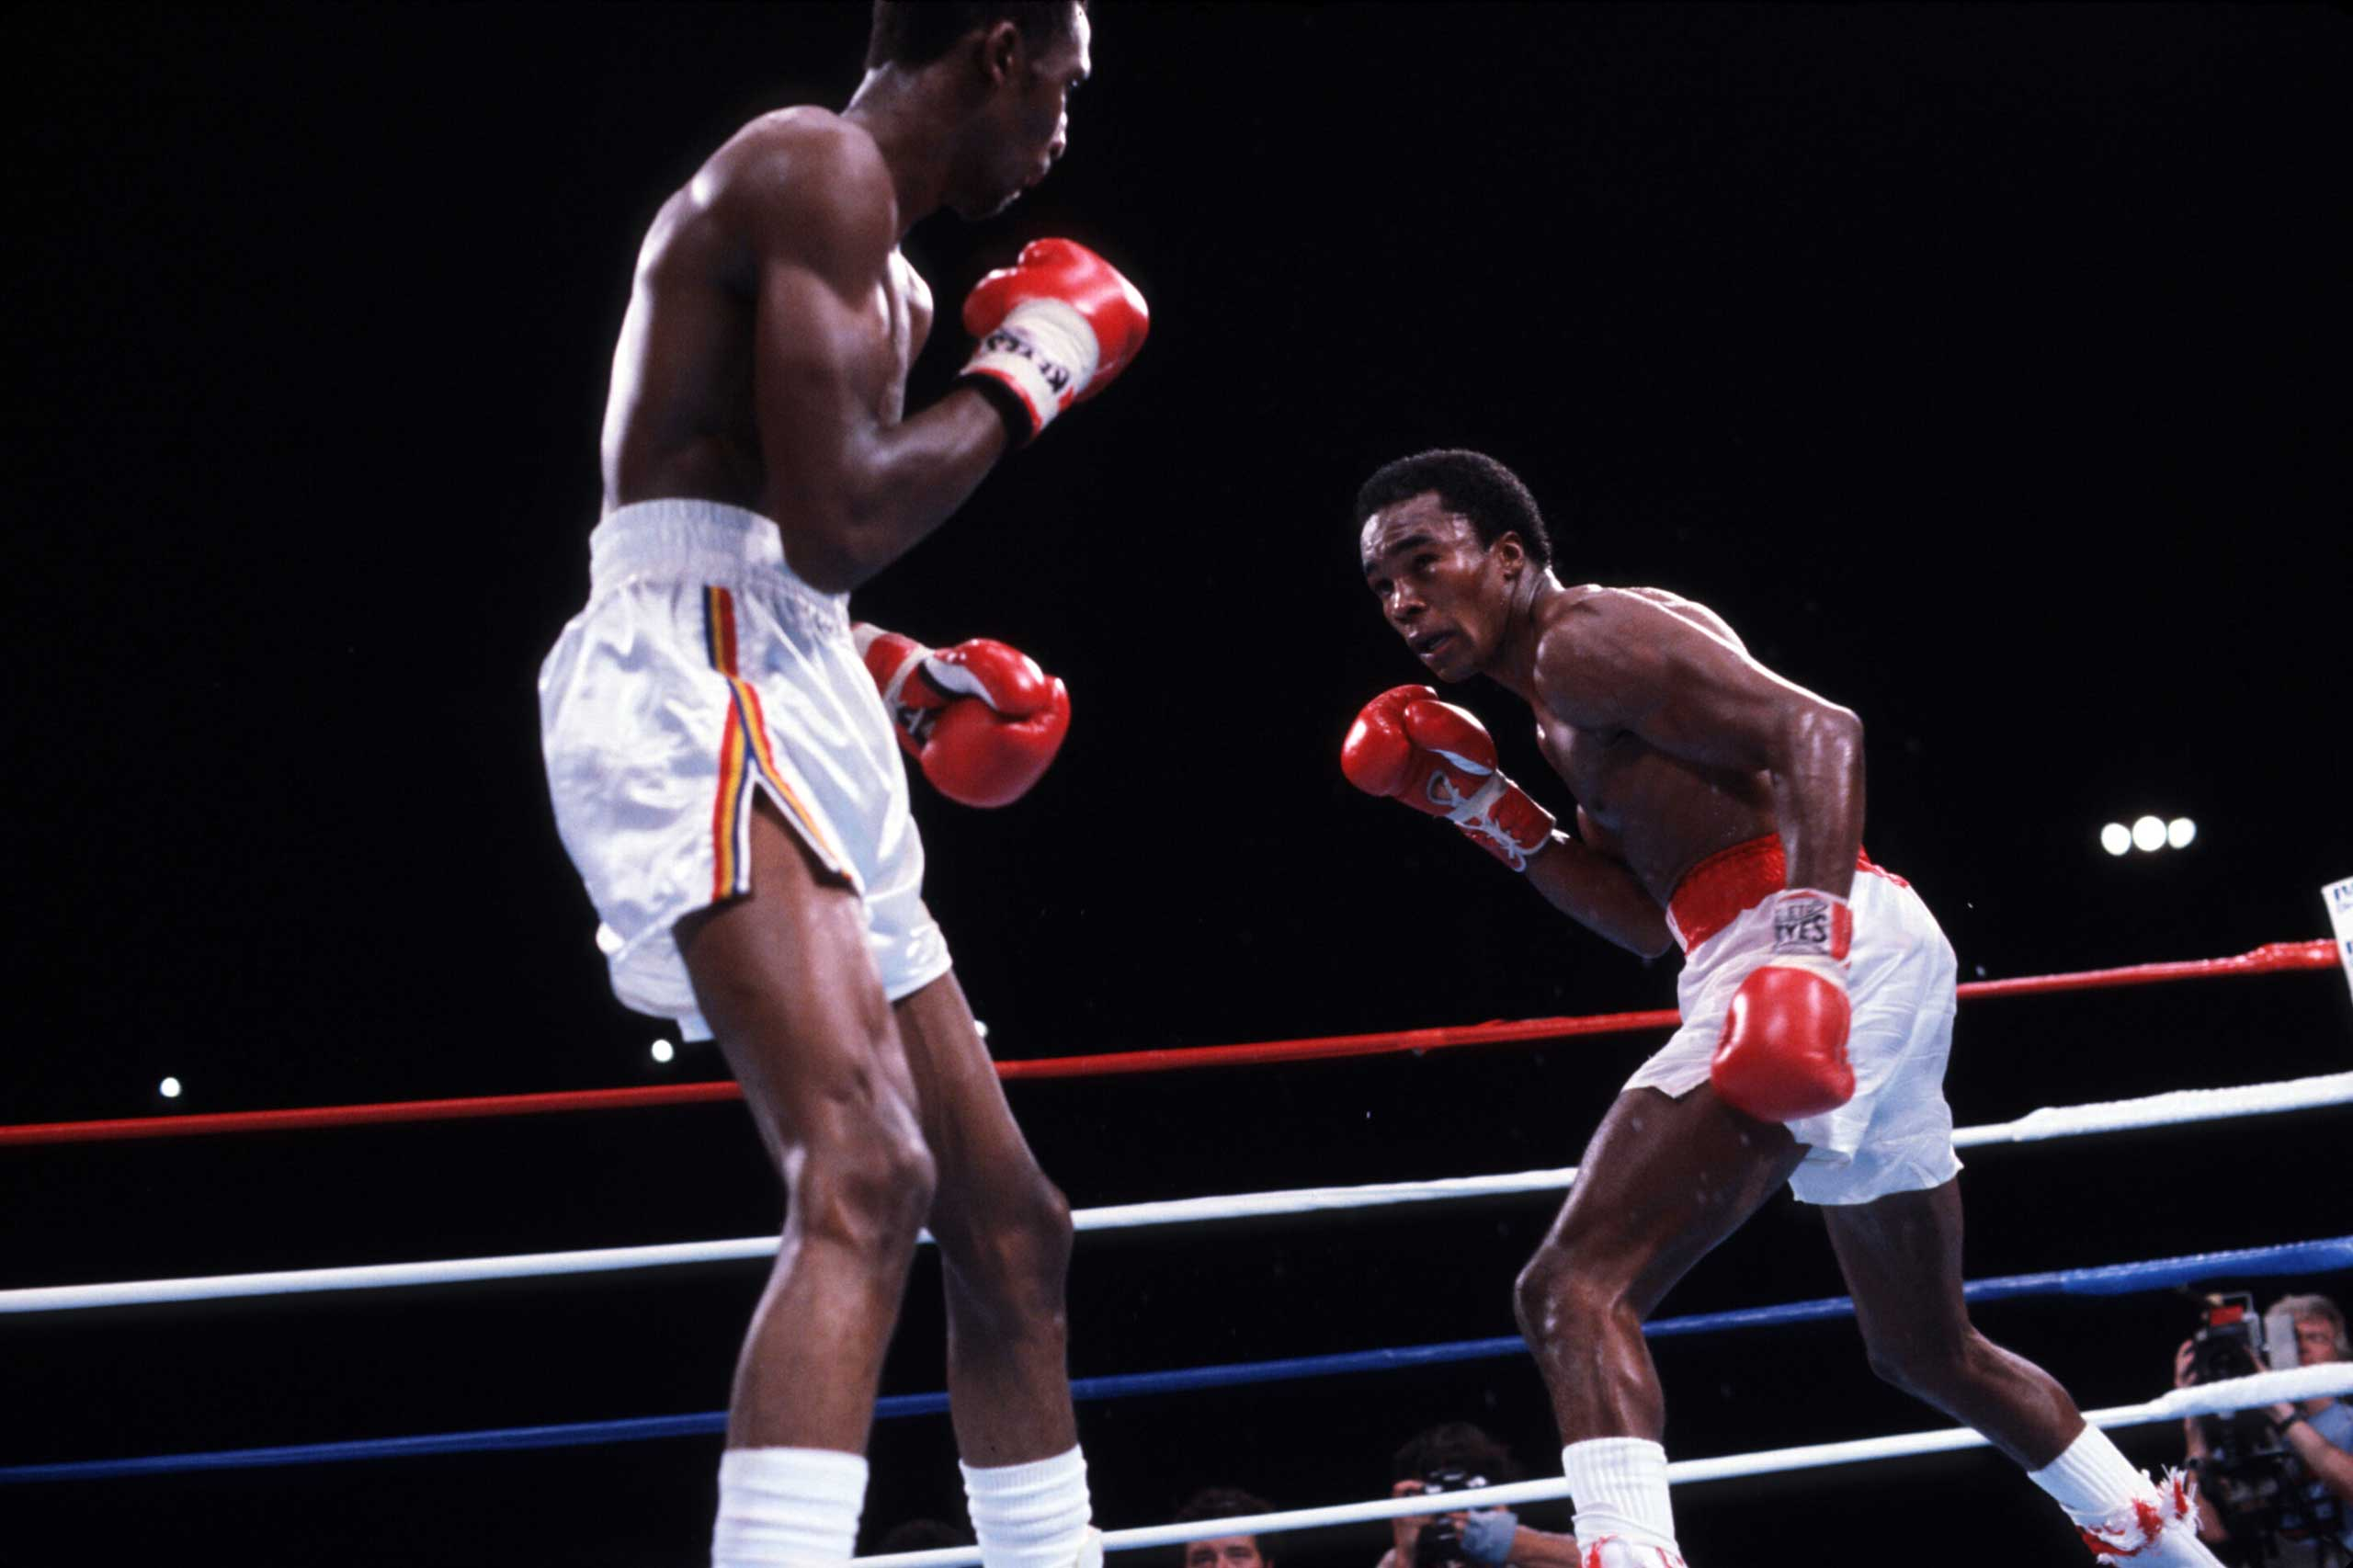 "<b>Sugar Ray Leonard, Sept. 16, 1981</b> This early 80s showdown at Caesars Palace in Las Vegas — billed as ""The Showdown"" — between WBC welterweight champ ""Sugar"" Ray Leonard and the hitherto undefeated Thomas ""Hitman"" Hearns, owner of the WBA crown, was a fight of beauty, full of an ebb and flow throughout. They were fighting to unify the World Welterweight Championship and the stakes couldn't have been higher. First Hearns, then Leonard and then Hearns again held the lead. Between rounds 12 and 13, Leonard's trainer, the legendary Angelo Dundee, exclaimed ""You're blowing it, son! You're blowing it!"" Leonard simply exploded in the 13th, knocking Hearns through the ropes. He didn't relent and finished him off in the 14th with a furious flurry of punches that forced referee Davey Pearl to call a halt to proceedings. Even worse for Hearns was that he was actually leading on all the judges' scorecards up to that point."